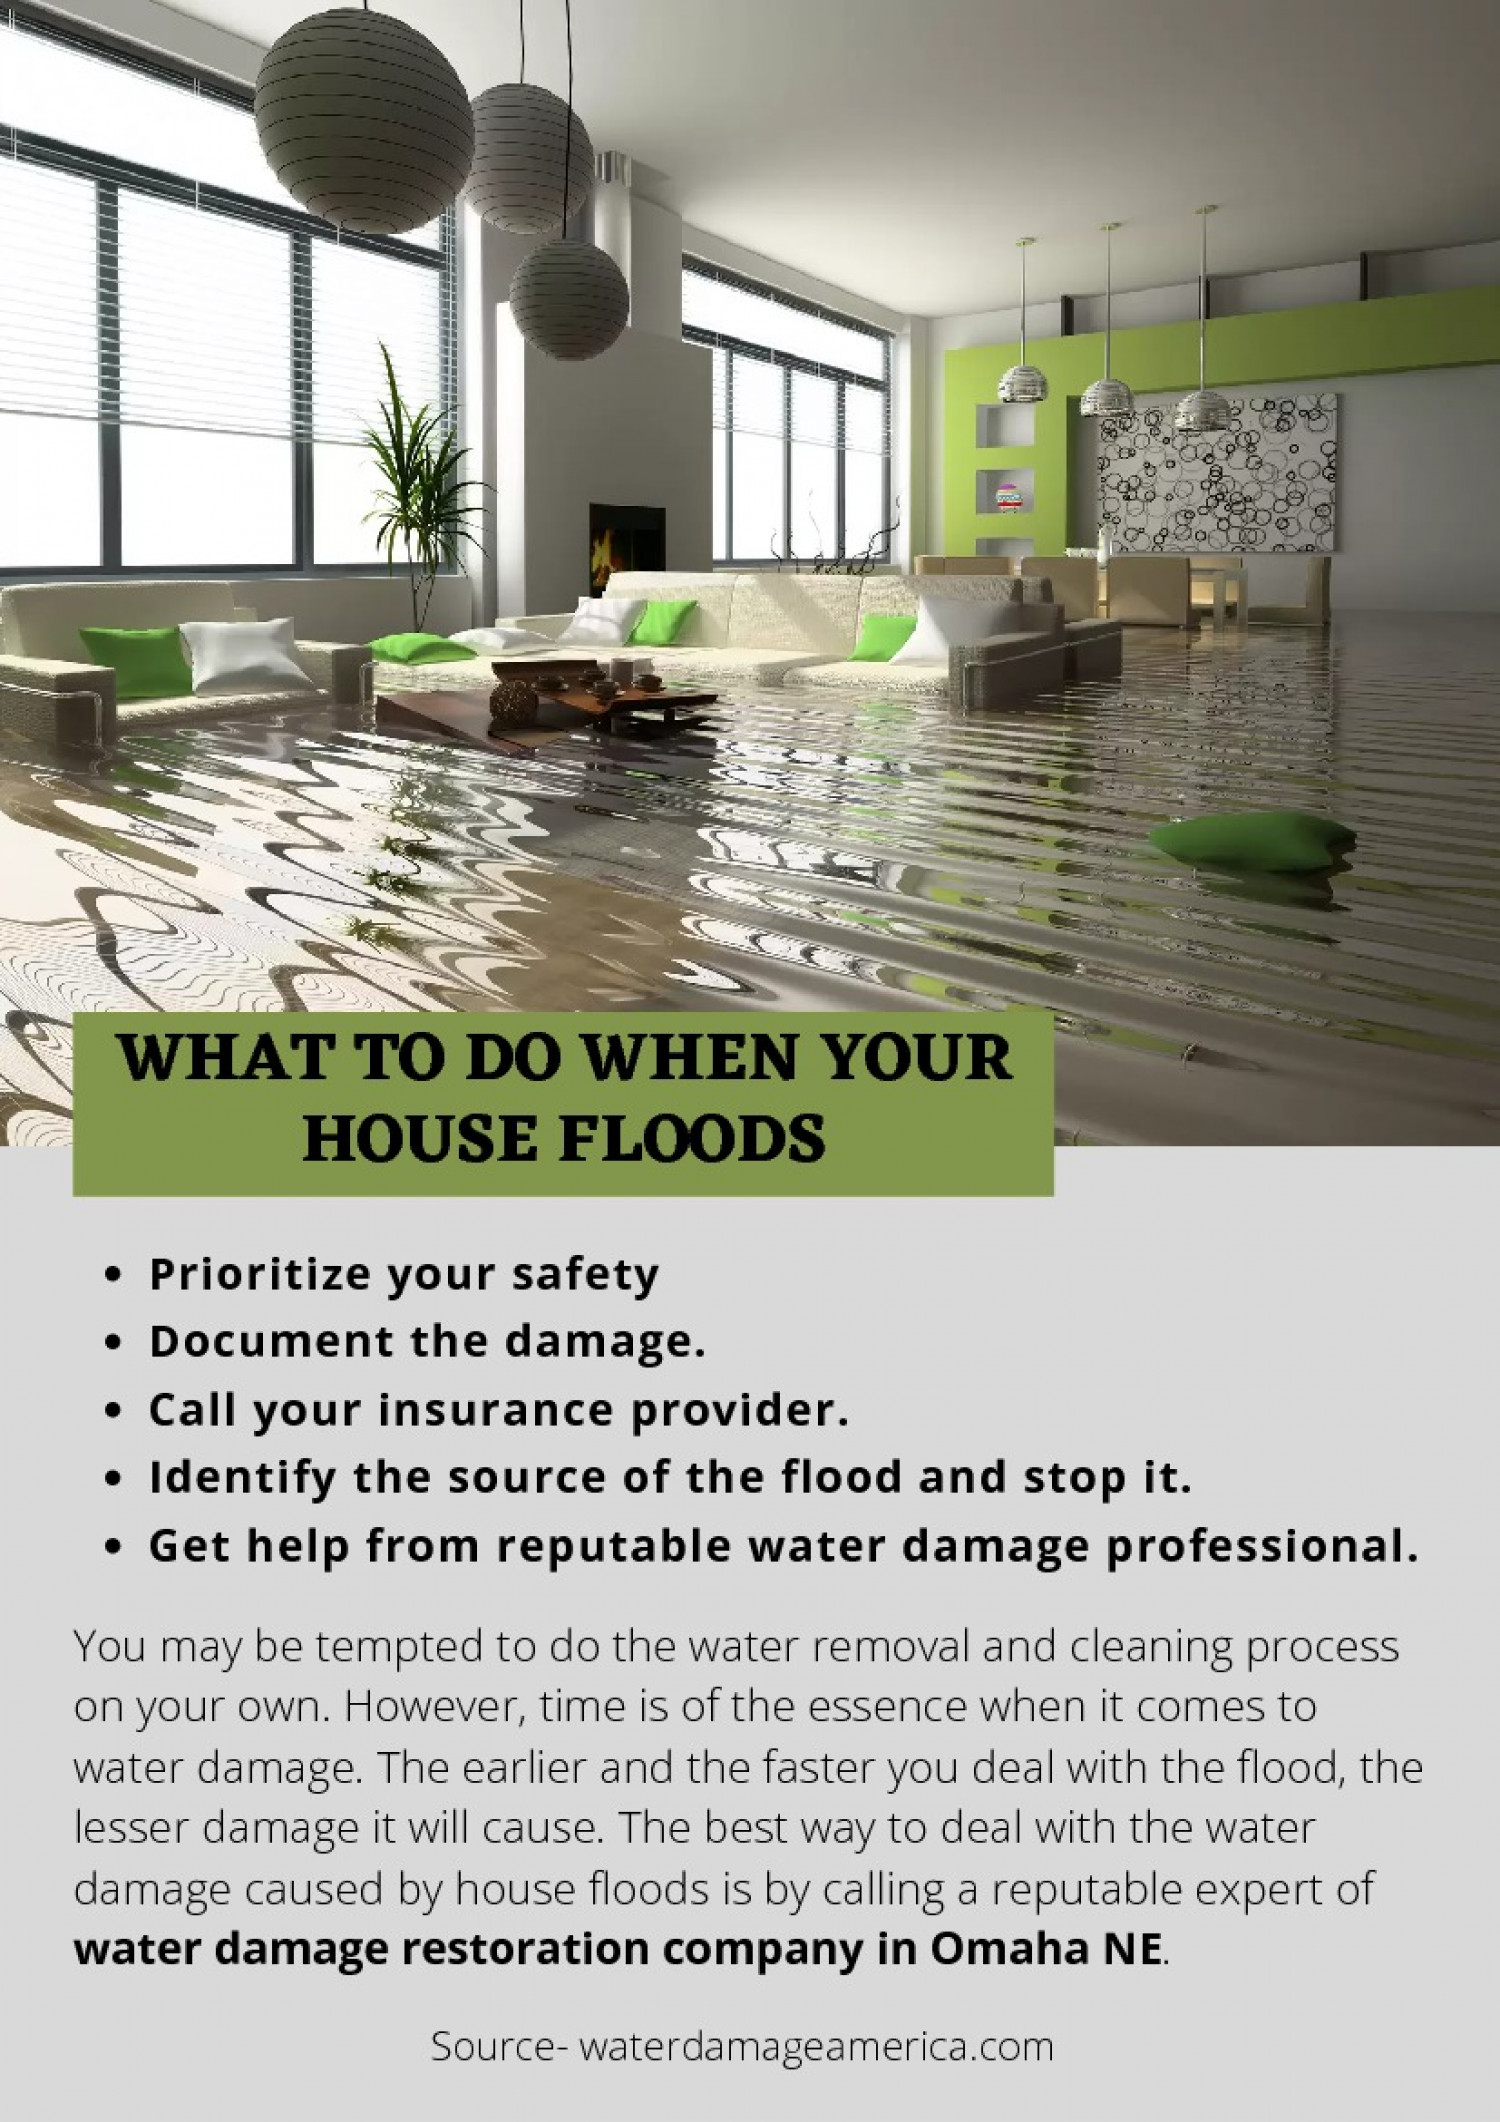 WHAT TO DO WHEN YOUR HOUSE FLOODS Infographic